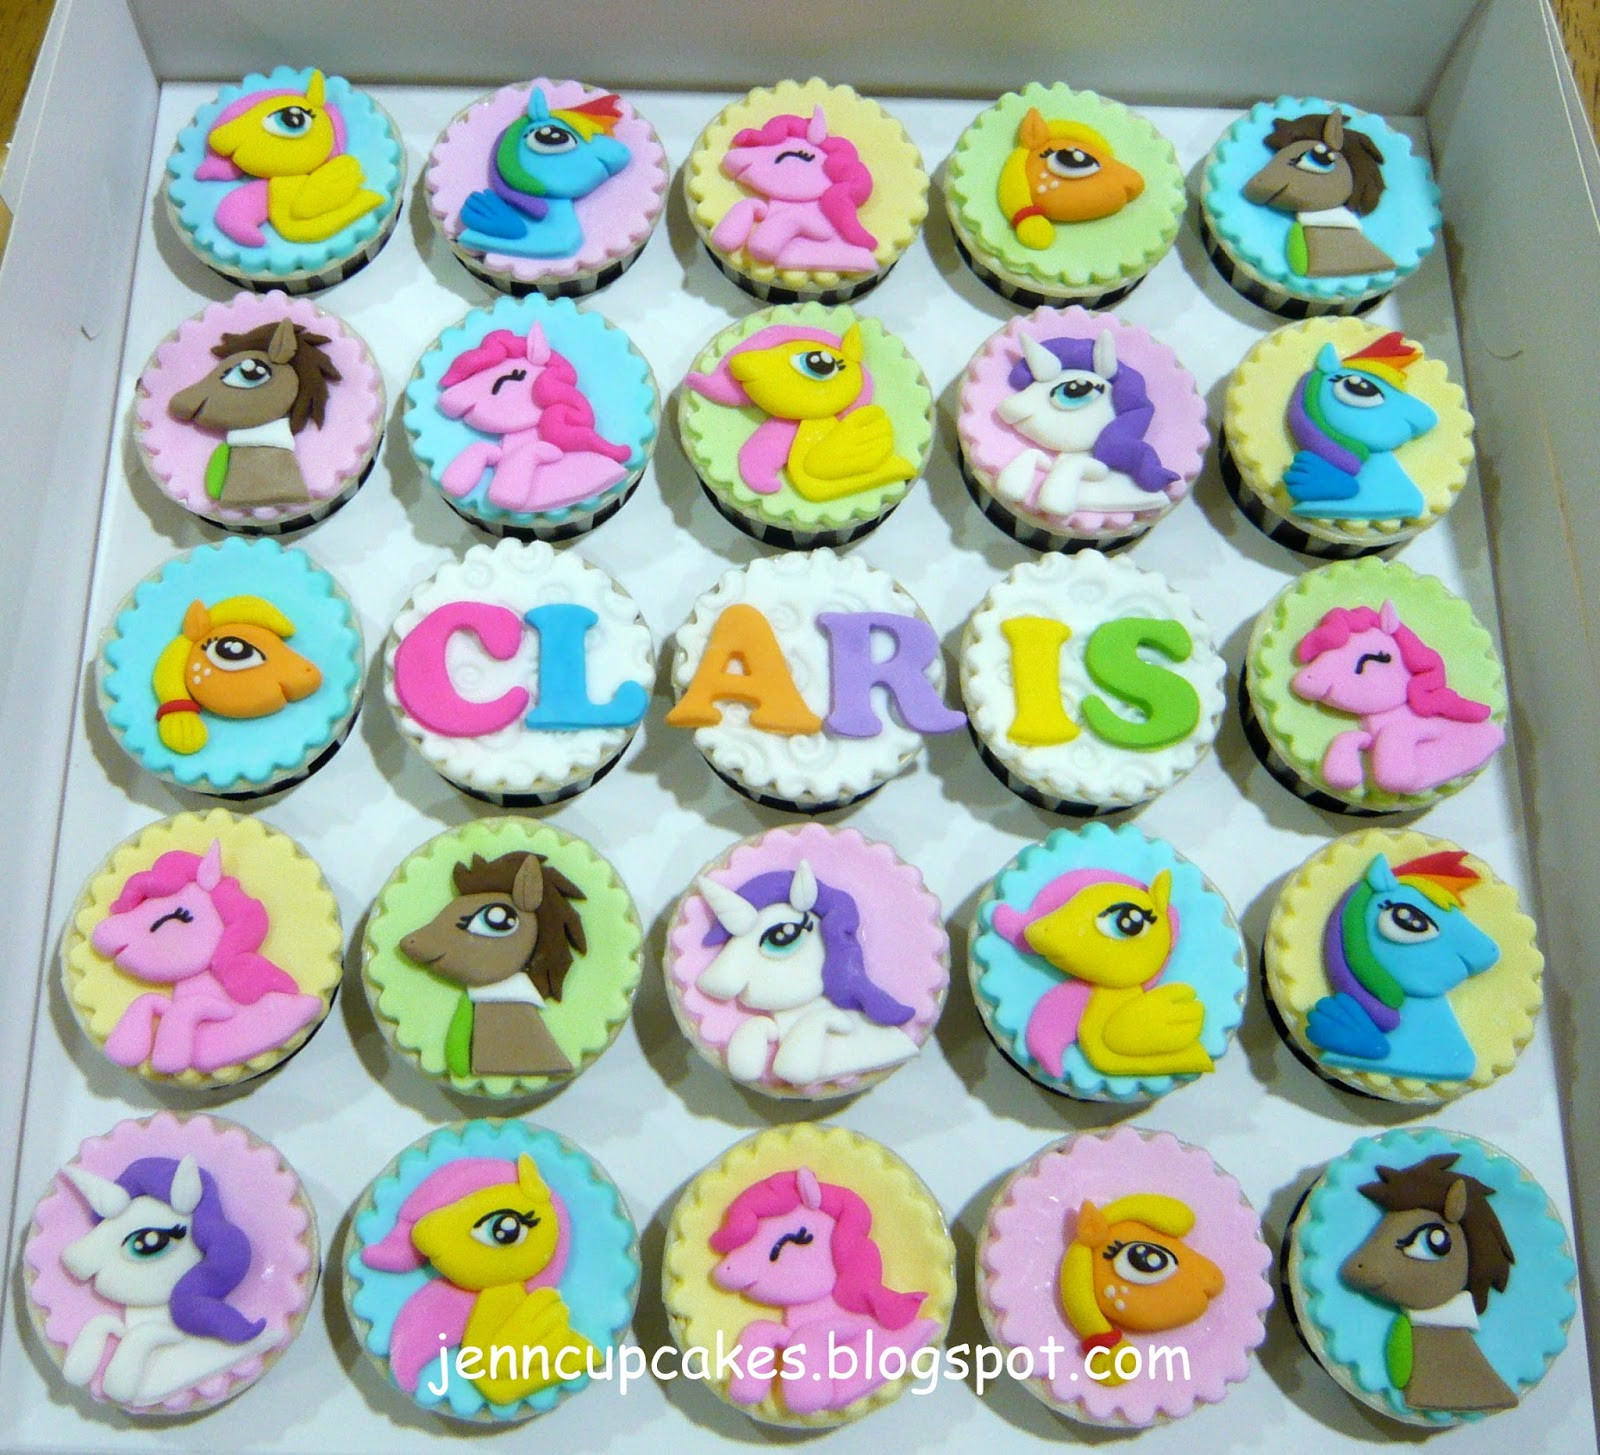 My Little Pony Cupcakes  Jenn Cupcakes & Muffins My Little Pony Cupcakes